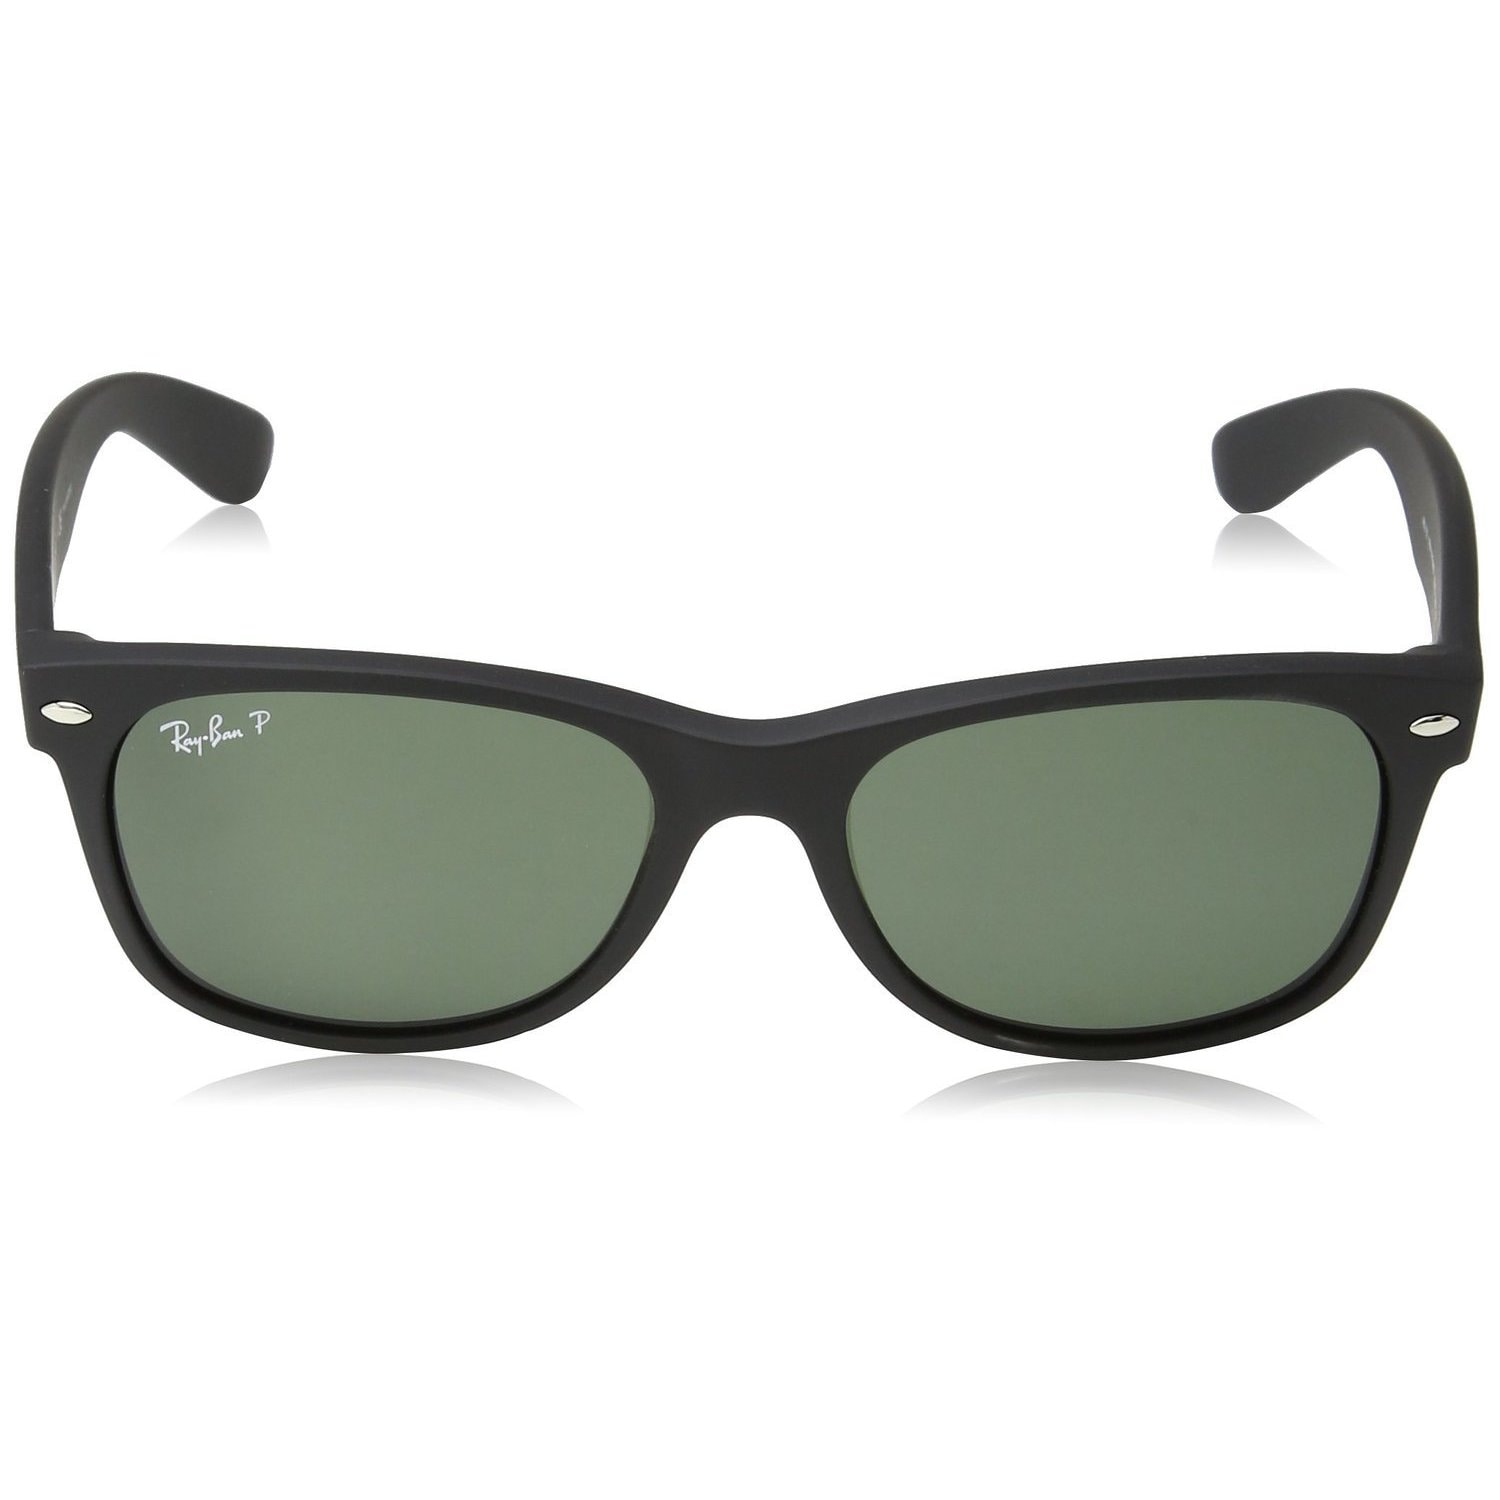 aa52cfbe7f Shop Ray-Ban RB2132 622 58 New Wayfarer Black Frame Polarized Green 52mm  Lens Sunglasses - Free Shipping Today - Overstock - 12180364